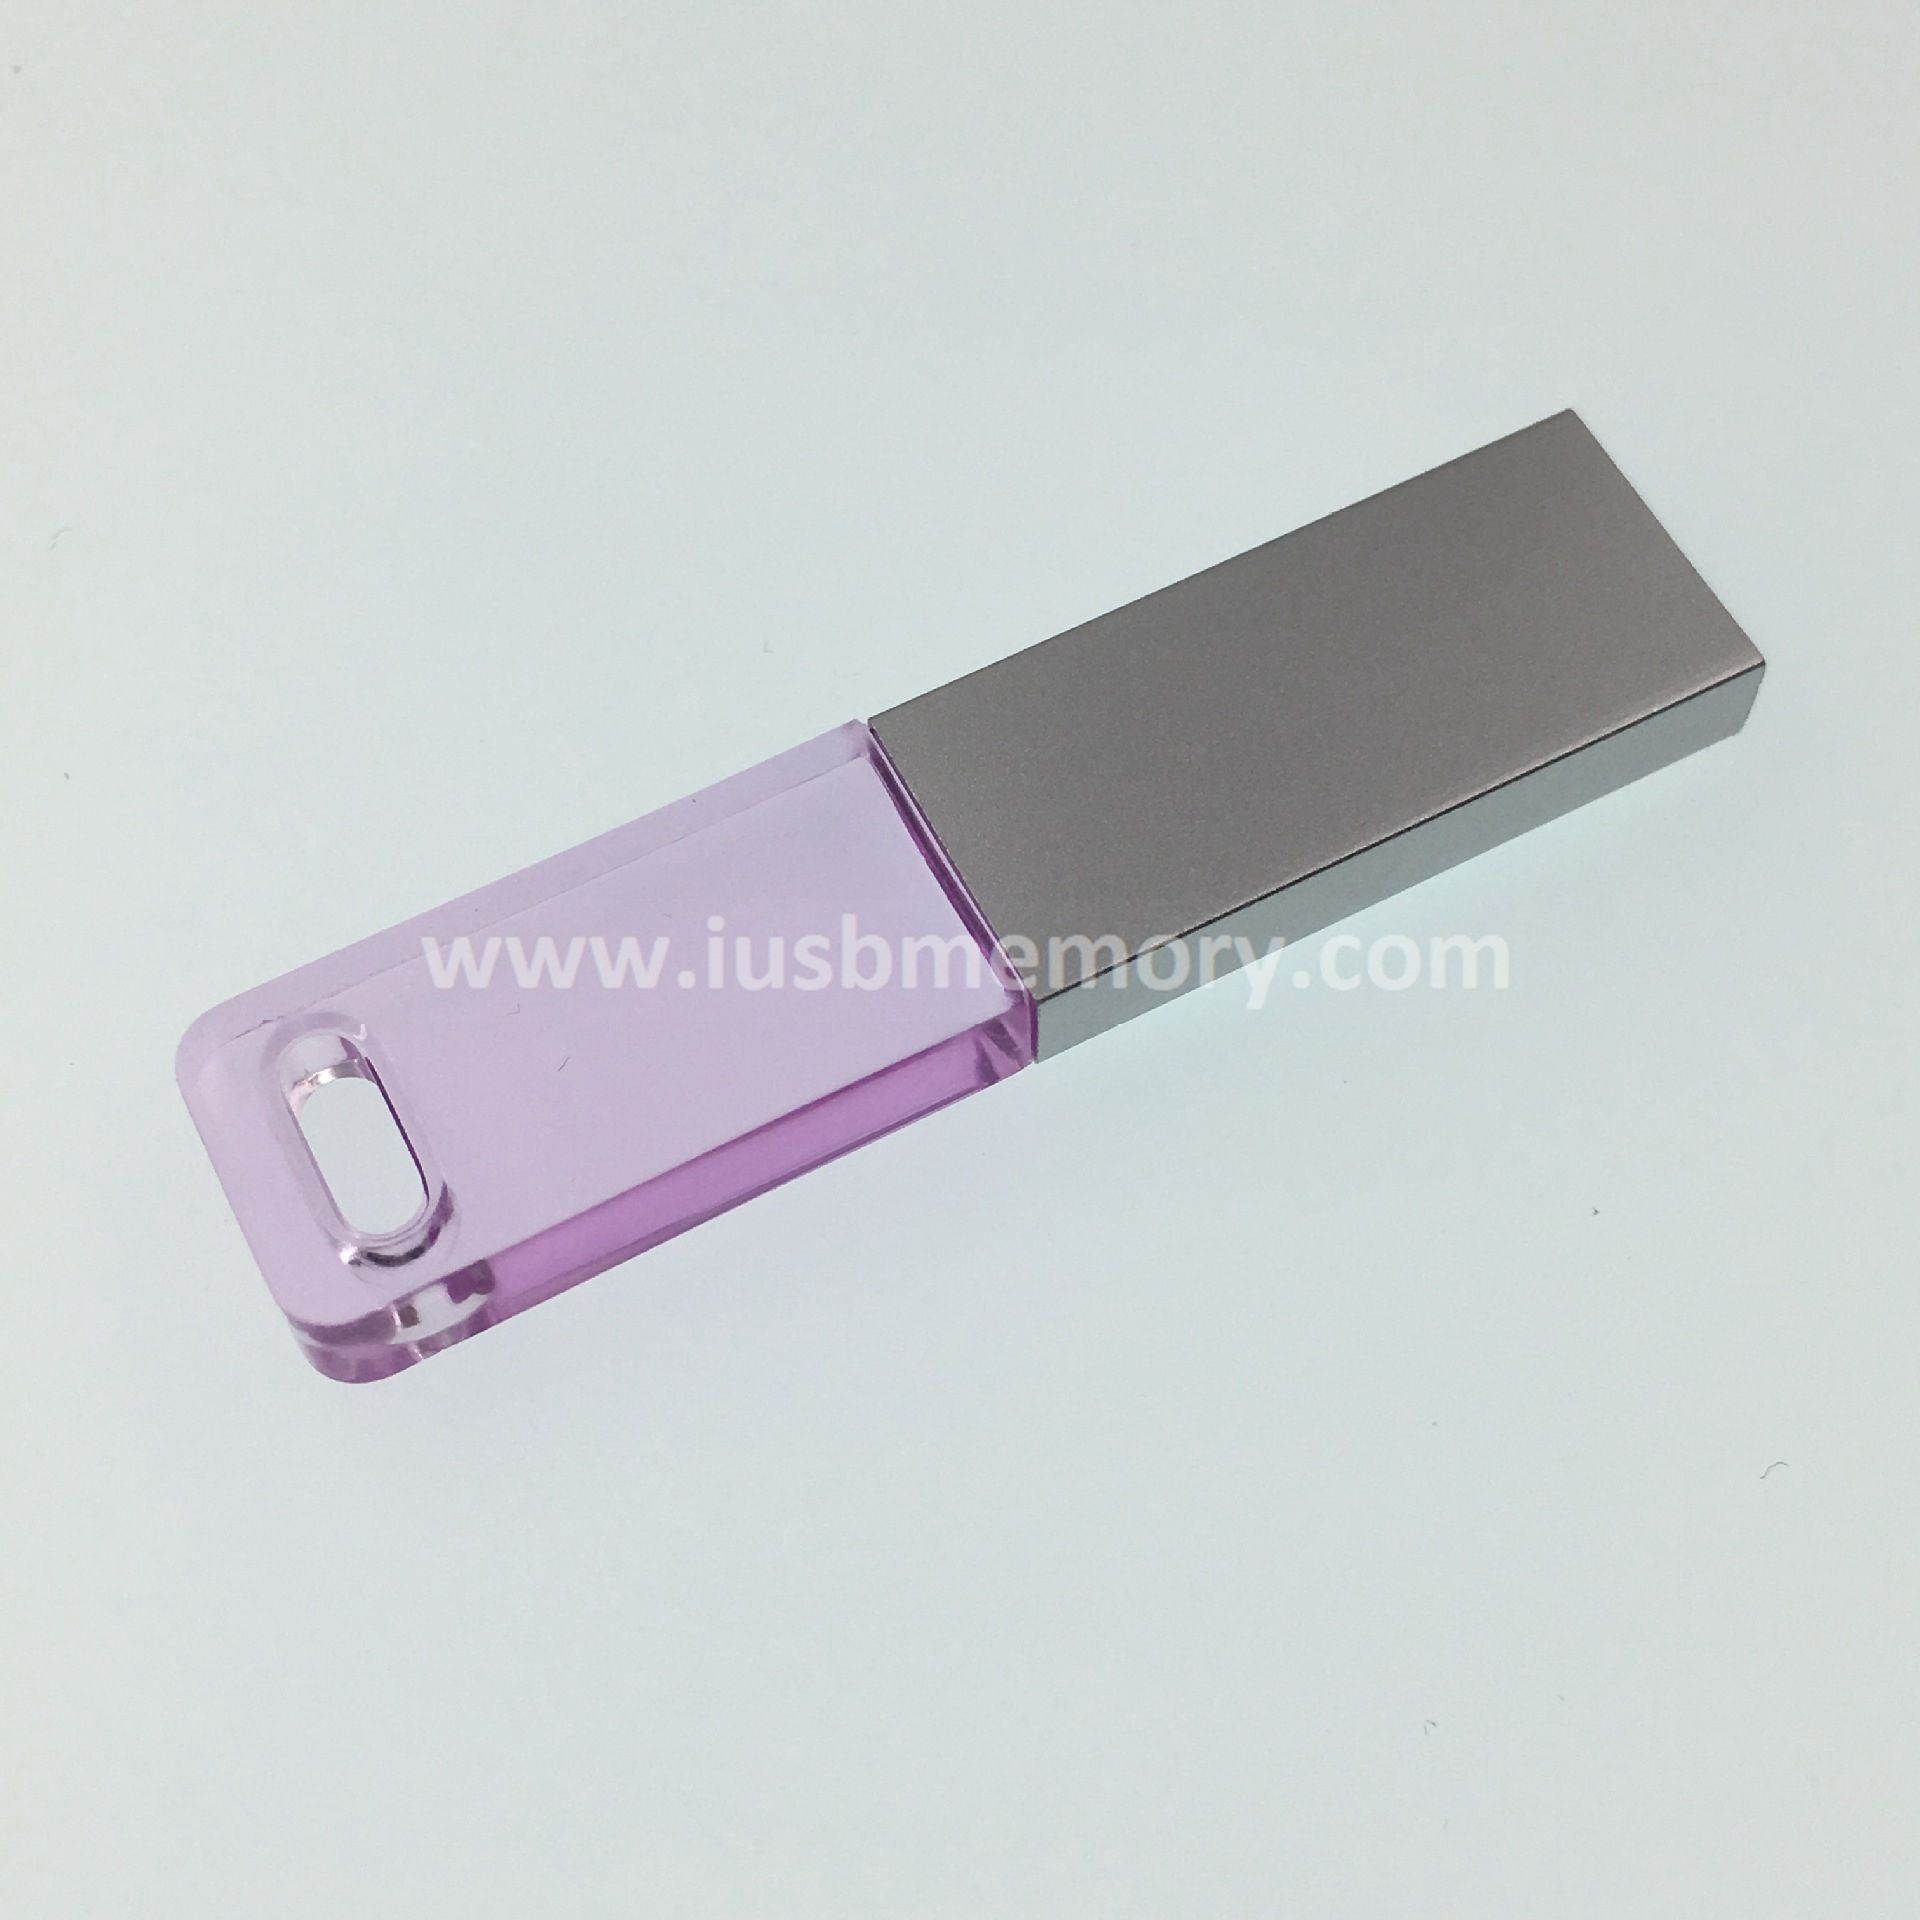 SR-007 customized crystal usb memory